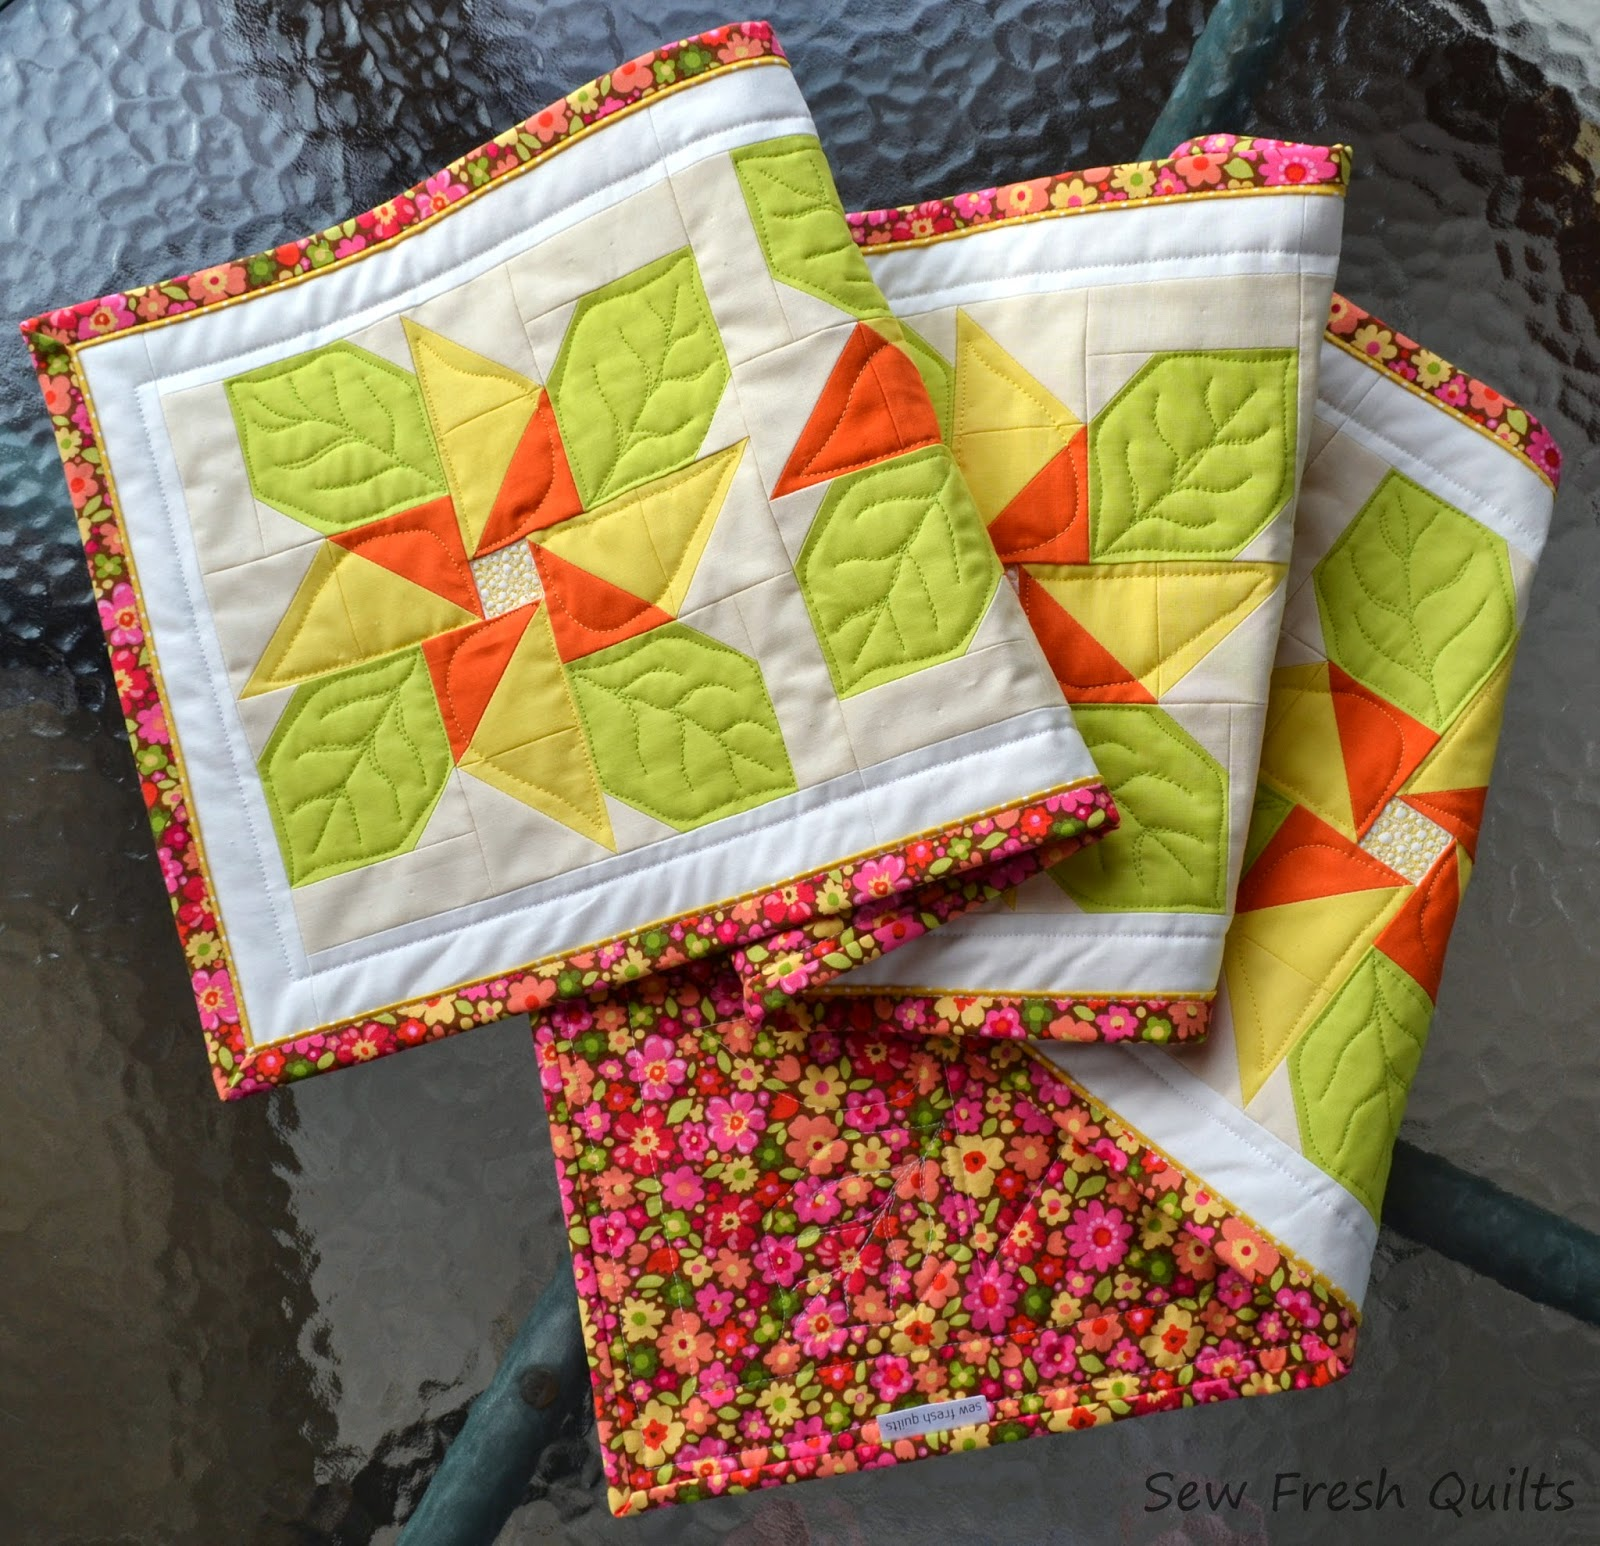 Sew Fresh Quilts: Flanged Binding Tutorial